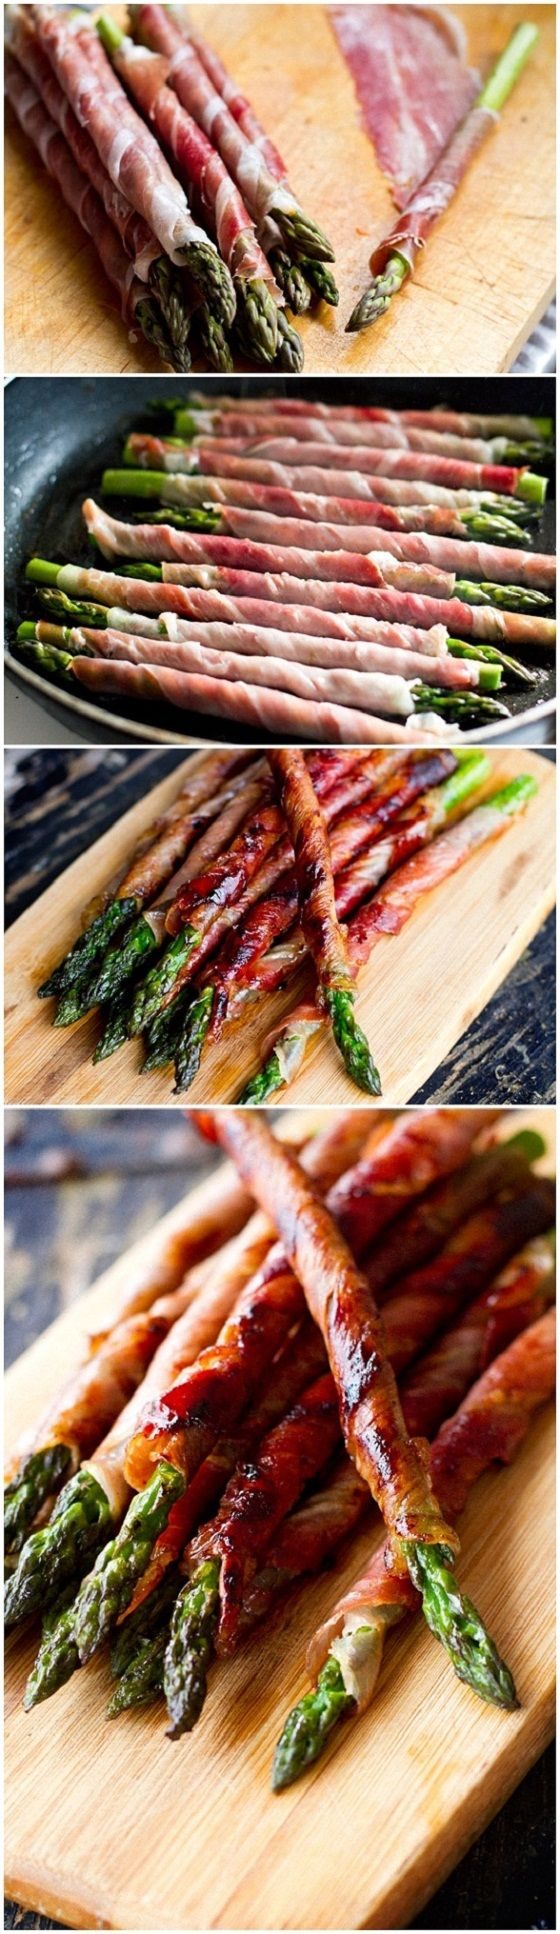 Prosciutto Wrapped Asparagus, for that Christmas Party I am invited to.